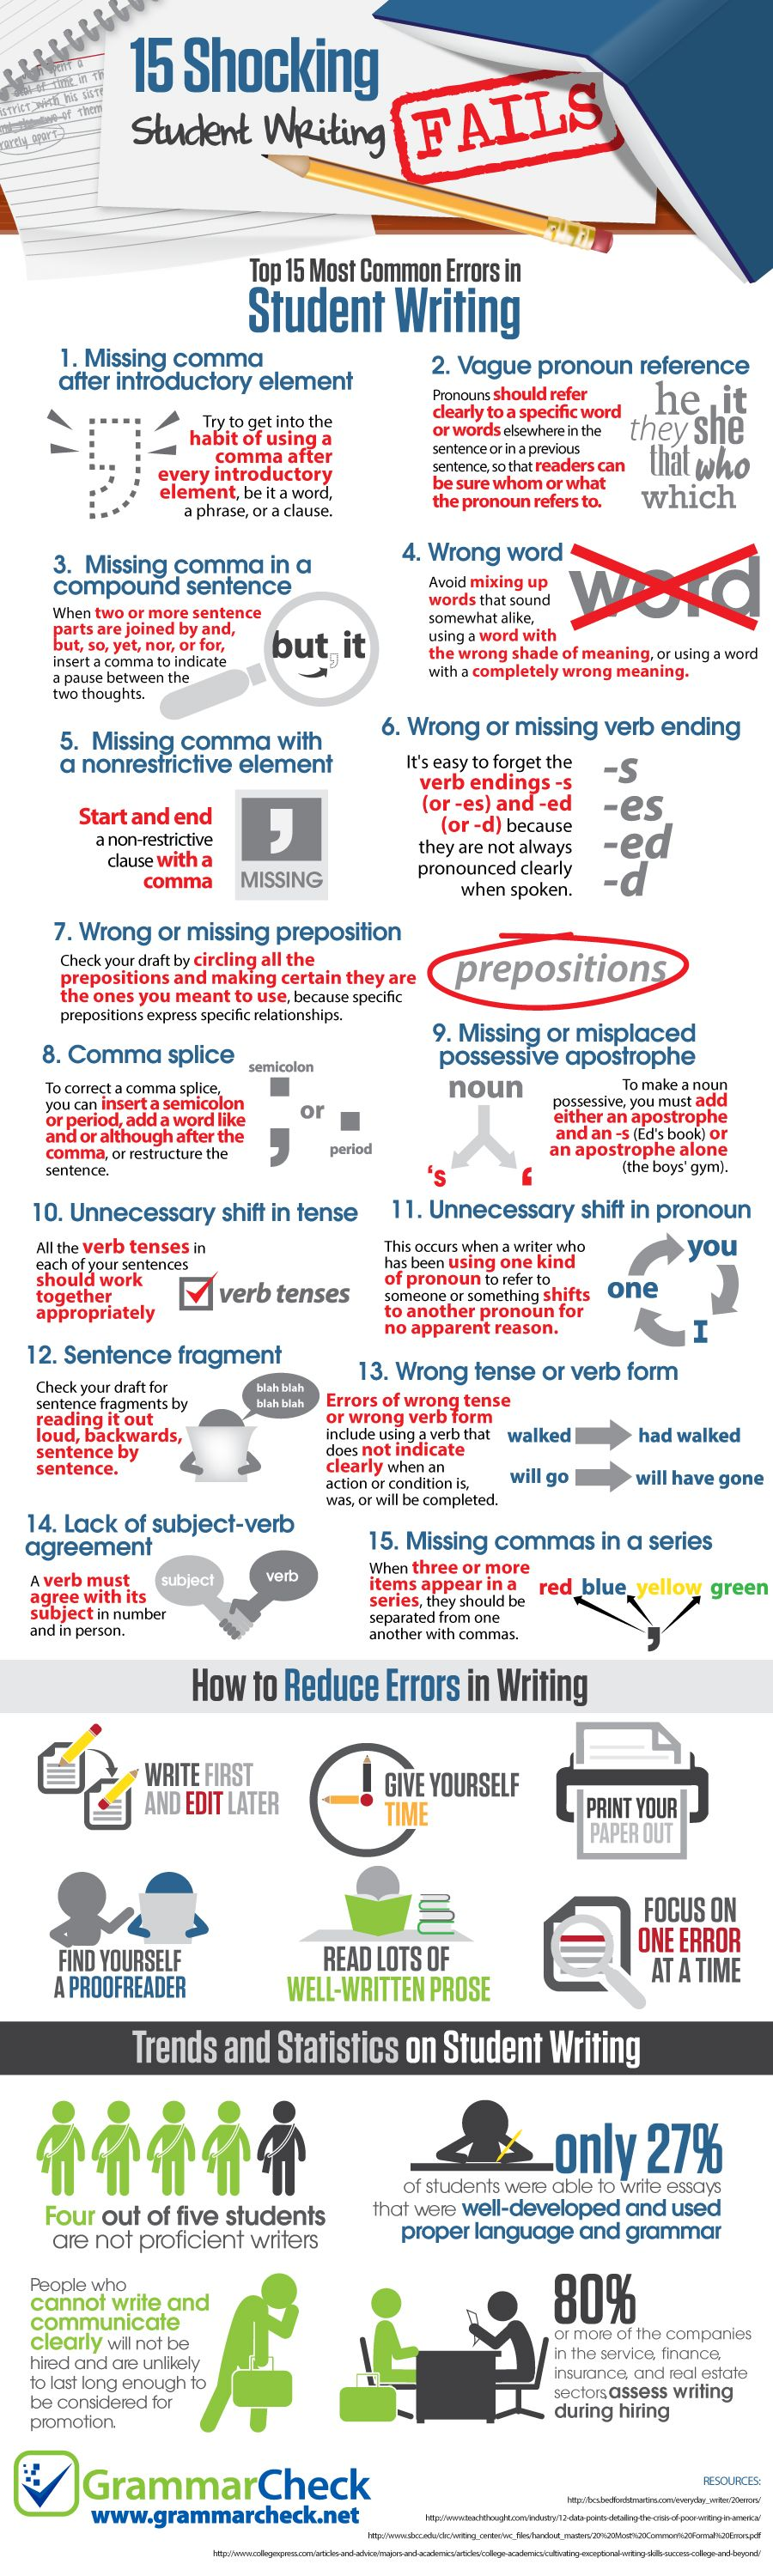 how to identify point of view infographic my first experience writing errors writing mistakes ielts writing writing writing education student writing essay writing literacy writing writing skills